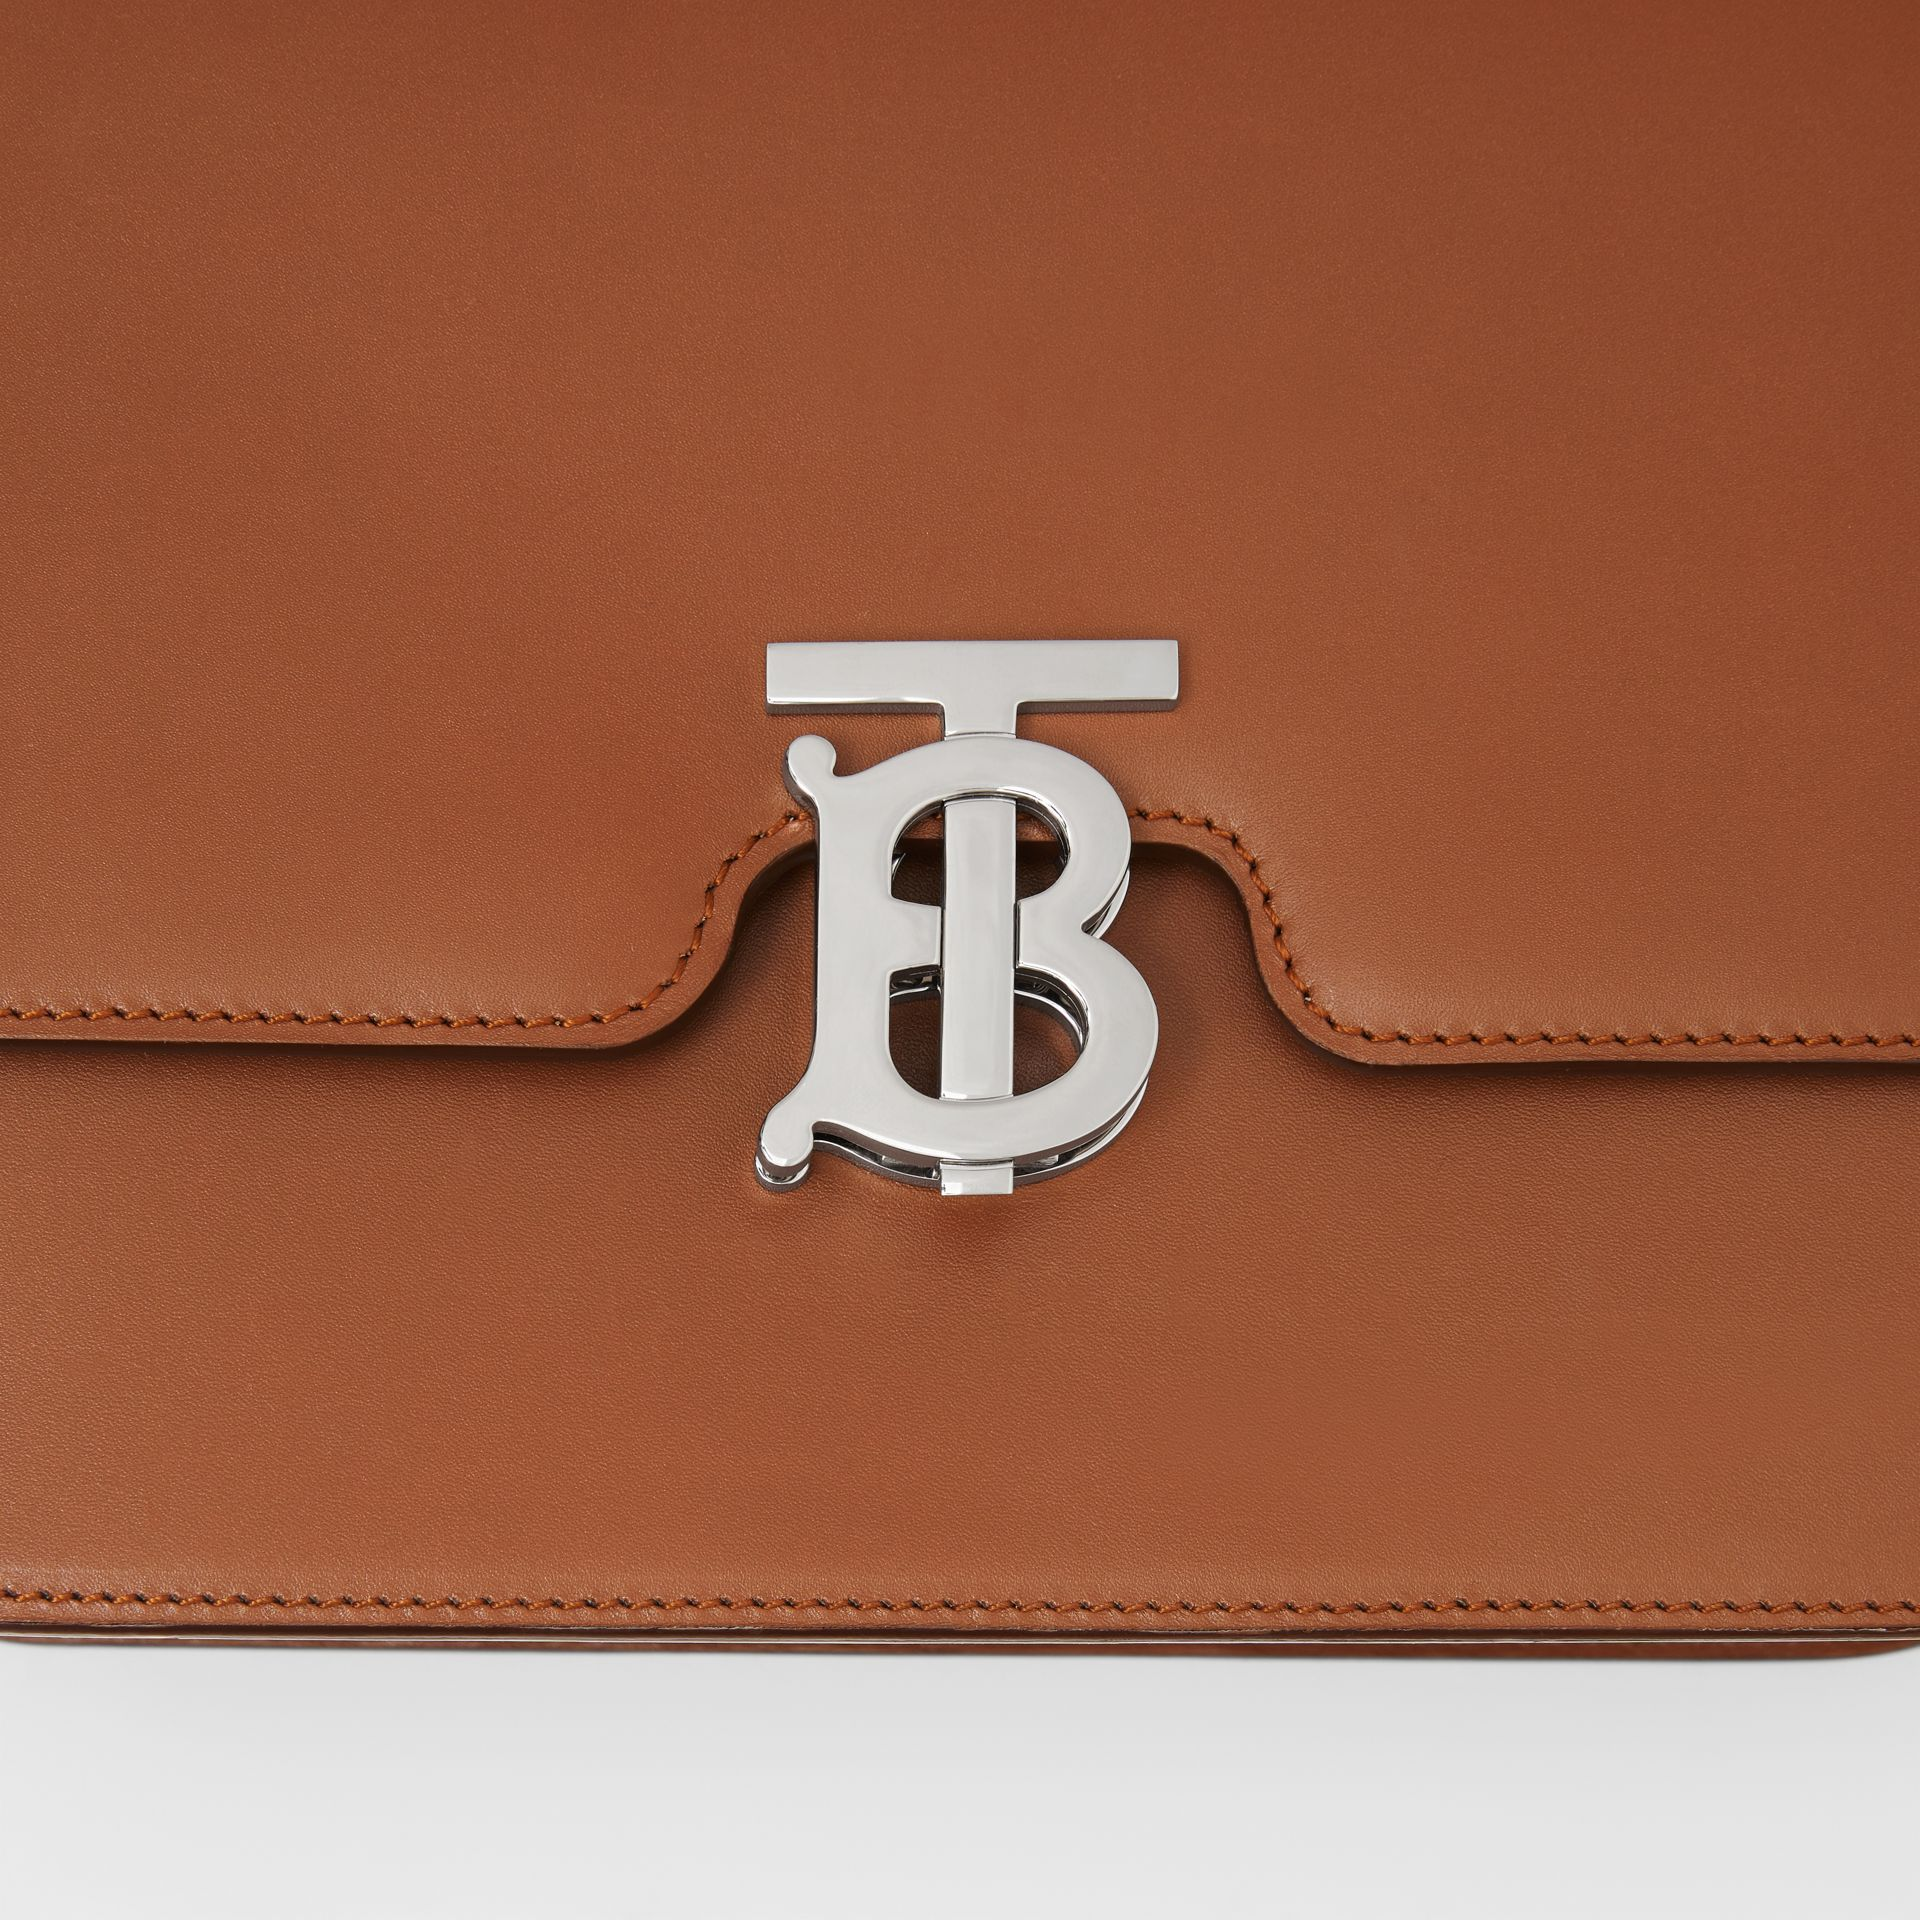 Medium Leather TB Bag in Malt Brown - Women | Burberry - gallery image 1